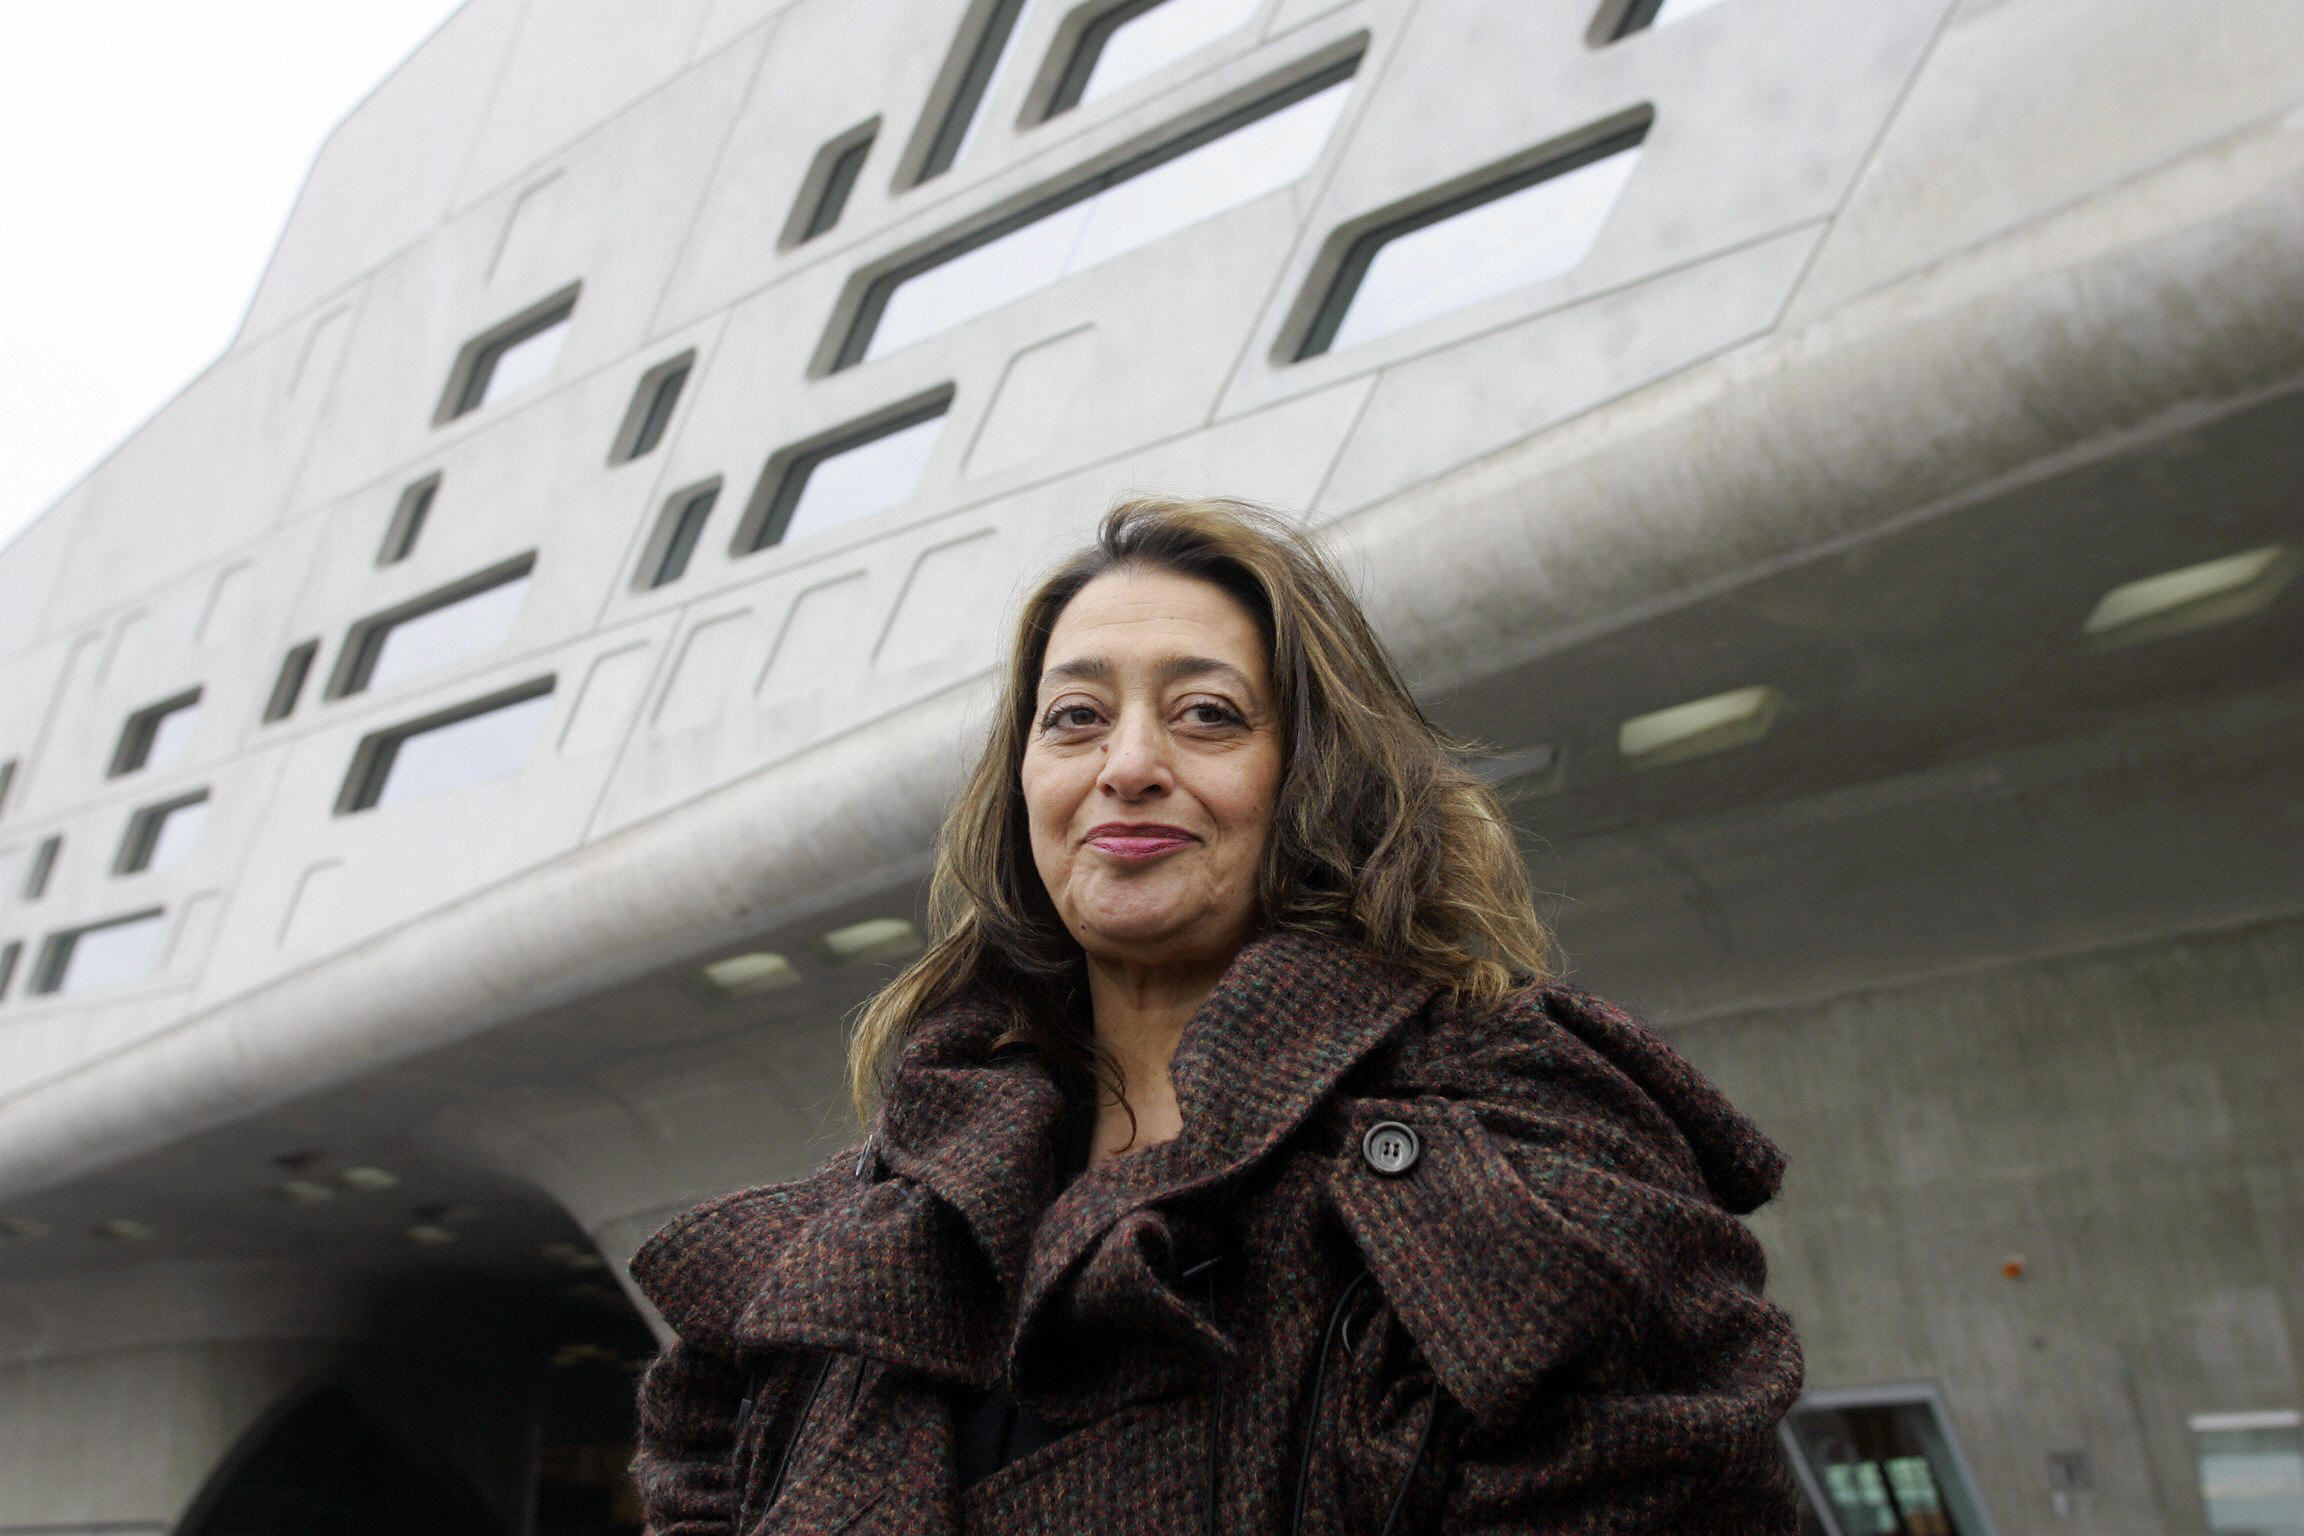 Zaha Hadid poses in front of the Phaeno Science Center in Wolfsburg, Germany, which she designed, in 2005.